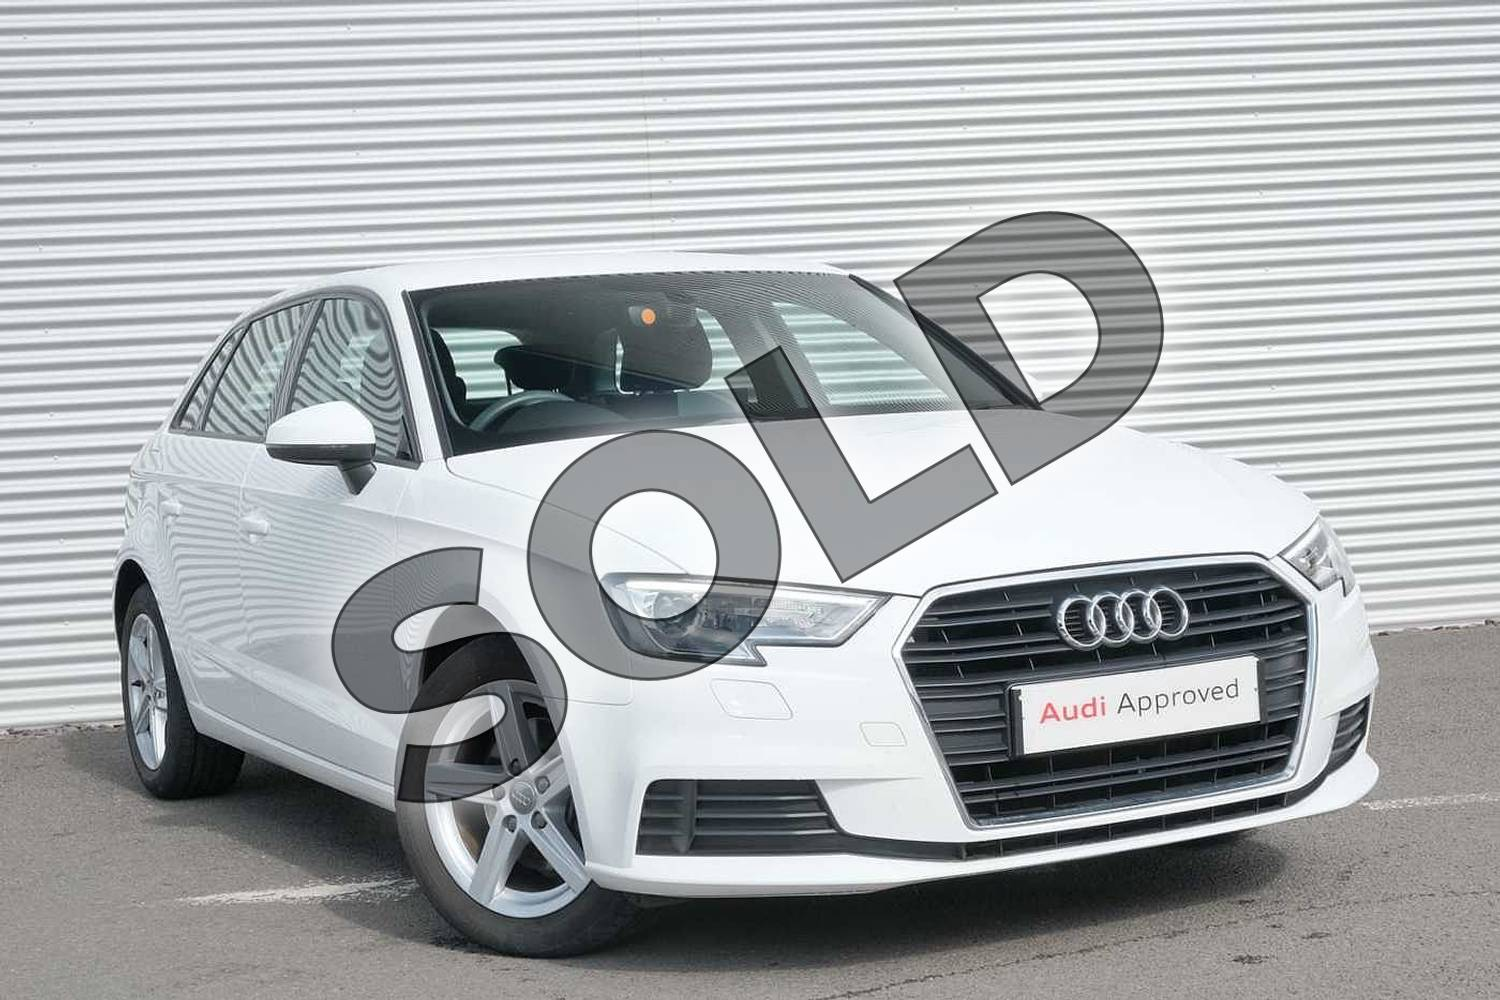 2017 Audi A3 Sportback 1.0 TFSI SE 5dr in Ibis White at Coventry Audi